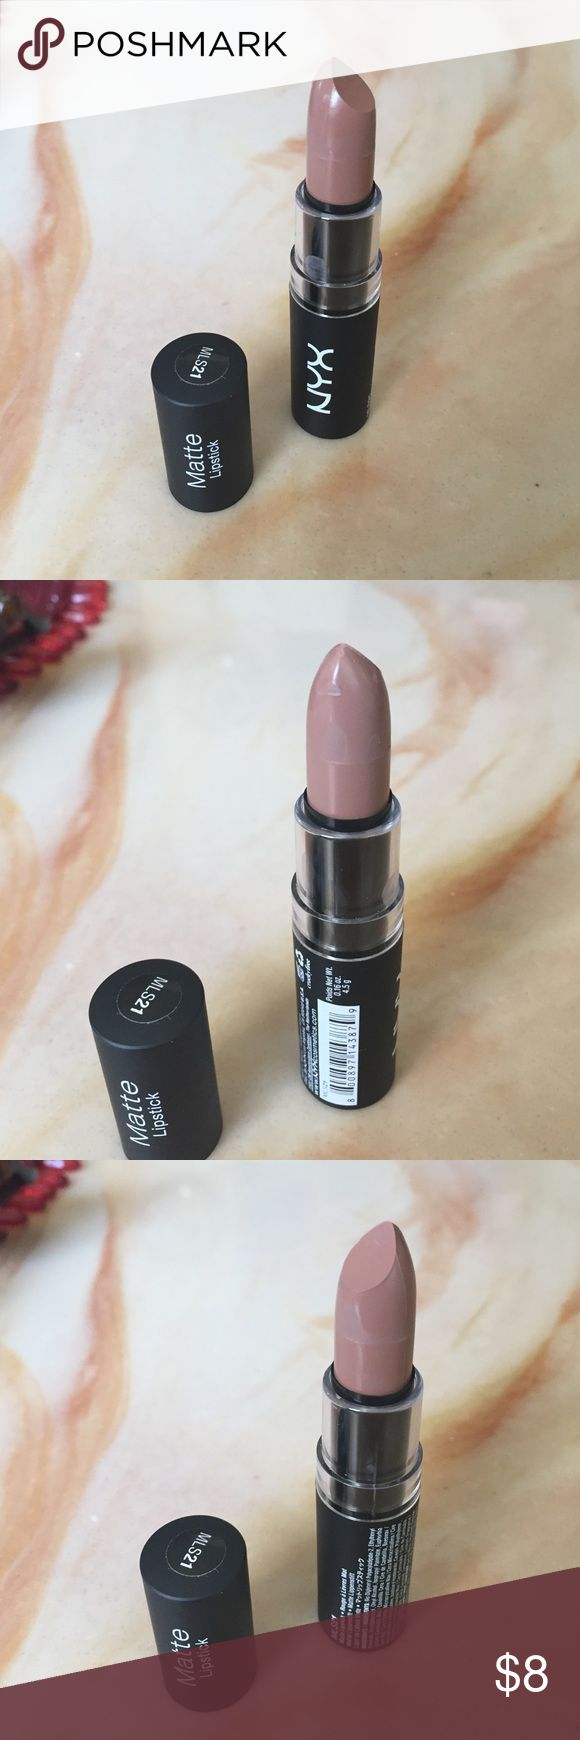 NYX matte lipstick NYX Matte Lipstick. MLS21 Color is Butter Beurre. Never used. Has a knick on the side as shown in the photos. Feel free to bundle with other items in my closet!  I have other colors in my closet in the nude series! NYX Makeup Lipstick